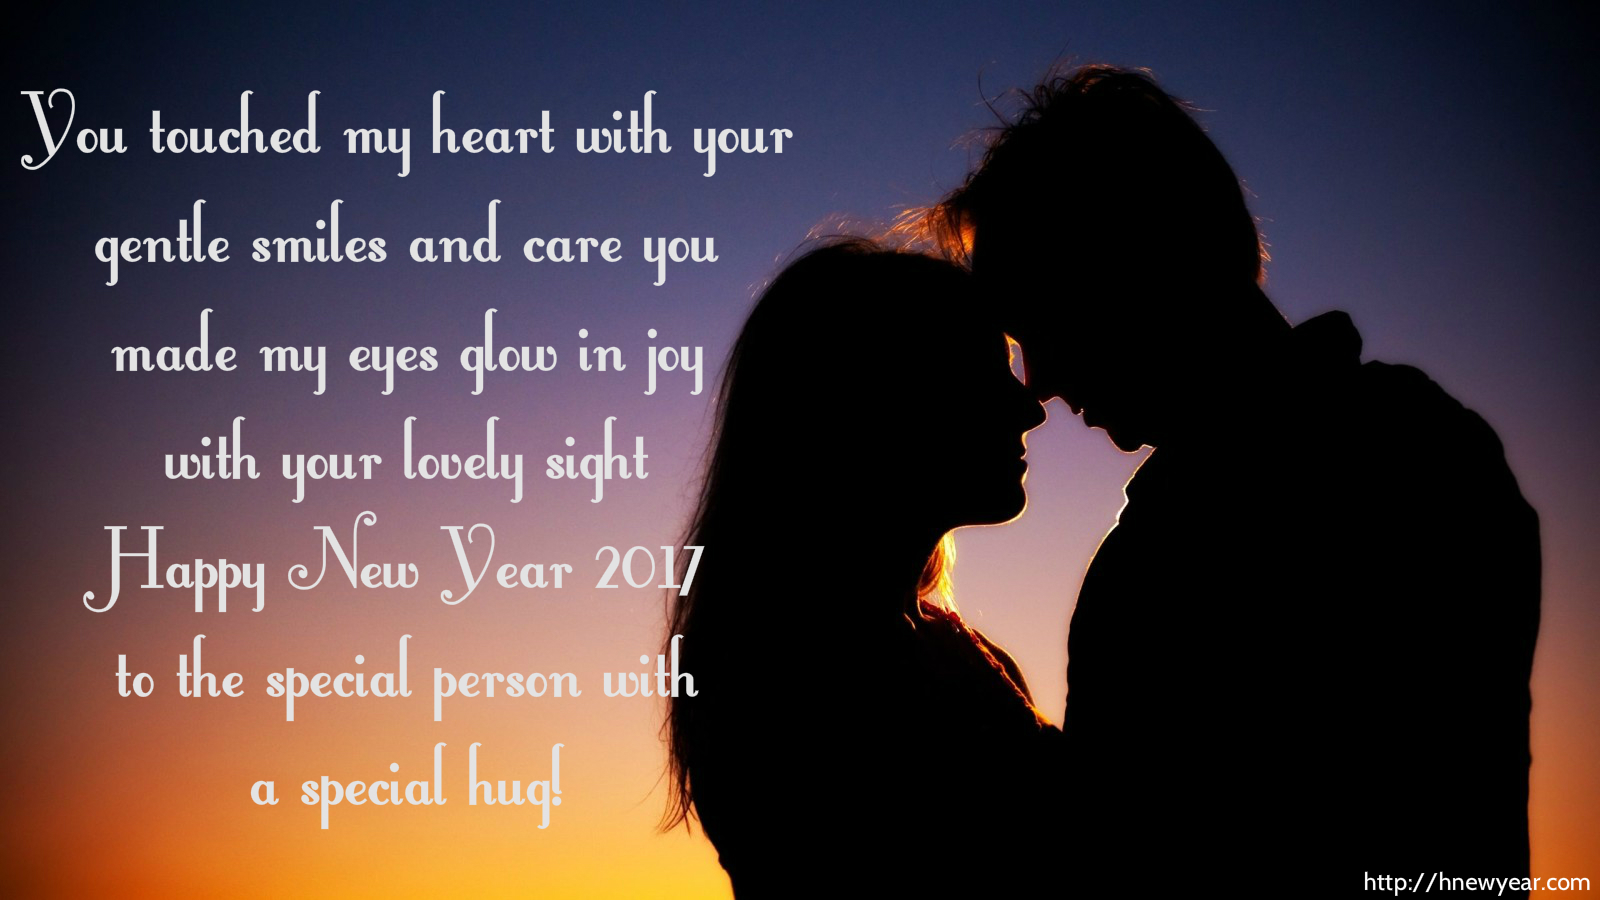 you touched my heart with your gentle smiles and care you made my eyes glow in joy with your lovely sight happy new year 2019 to the special person with a